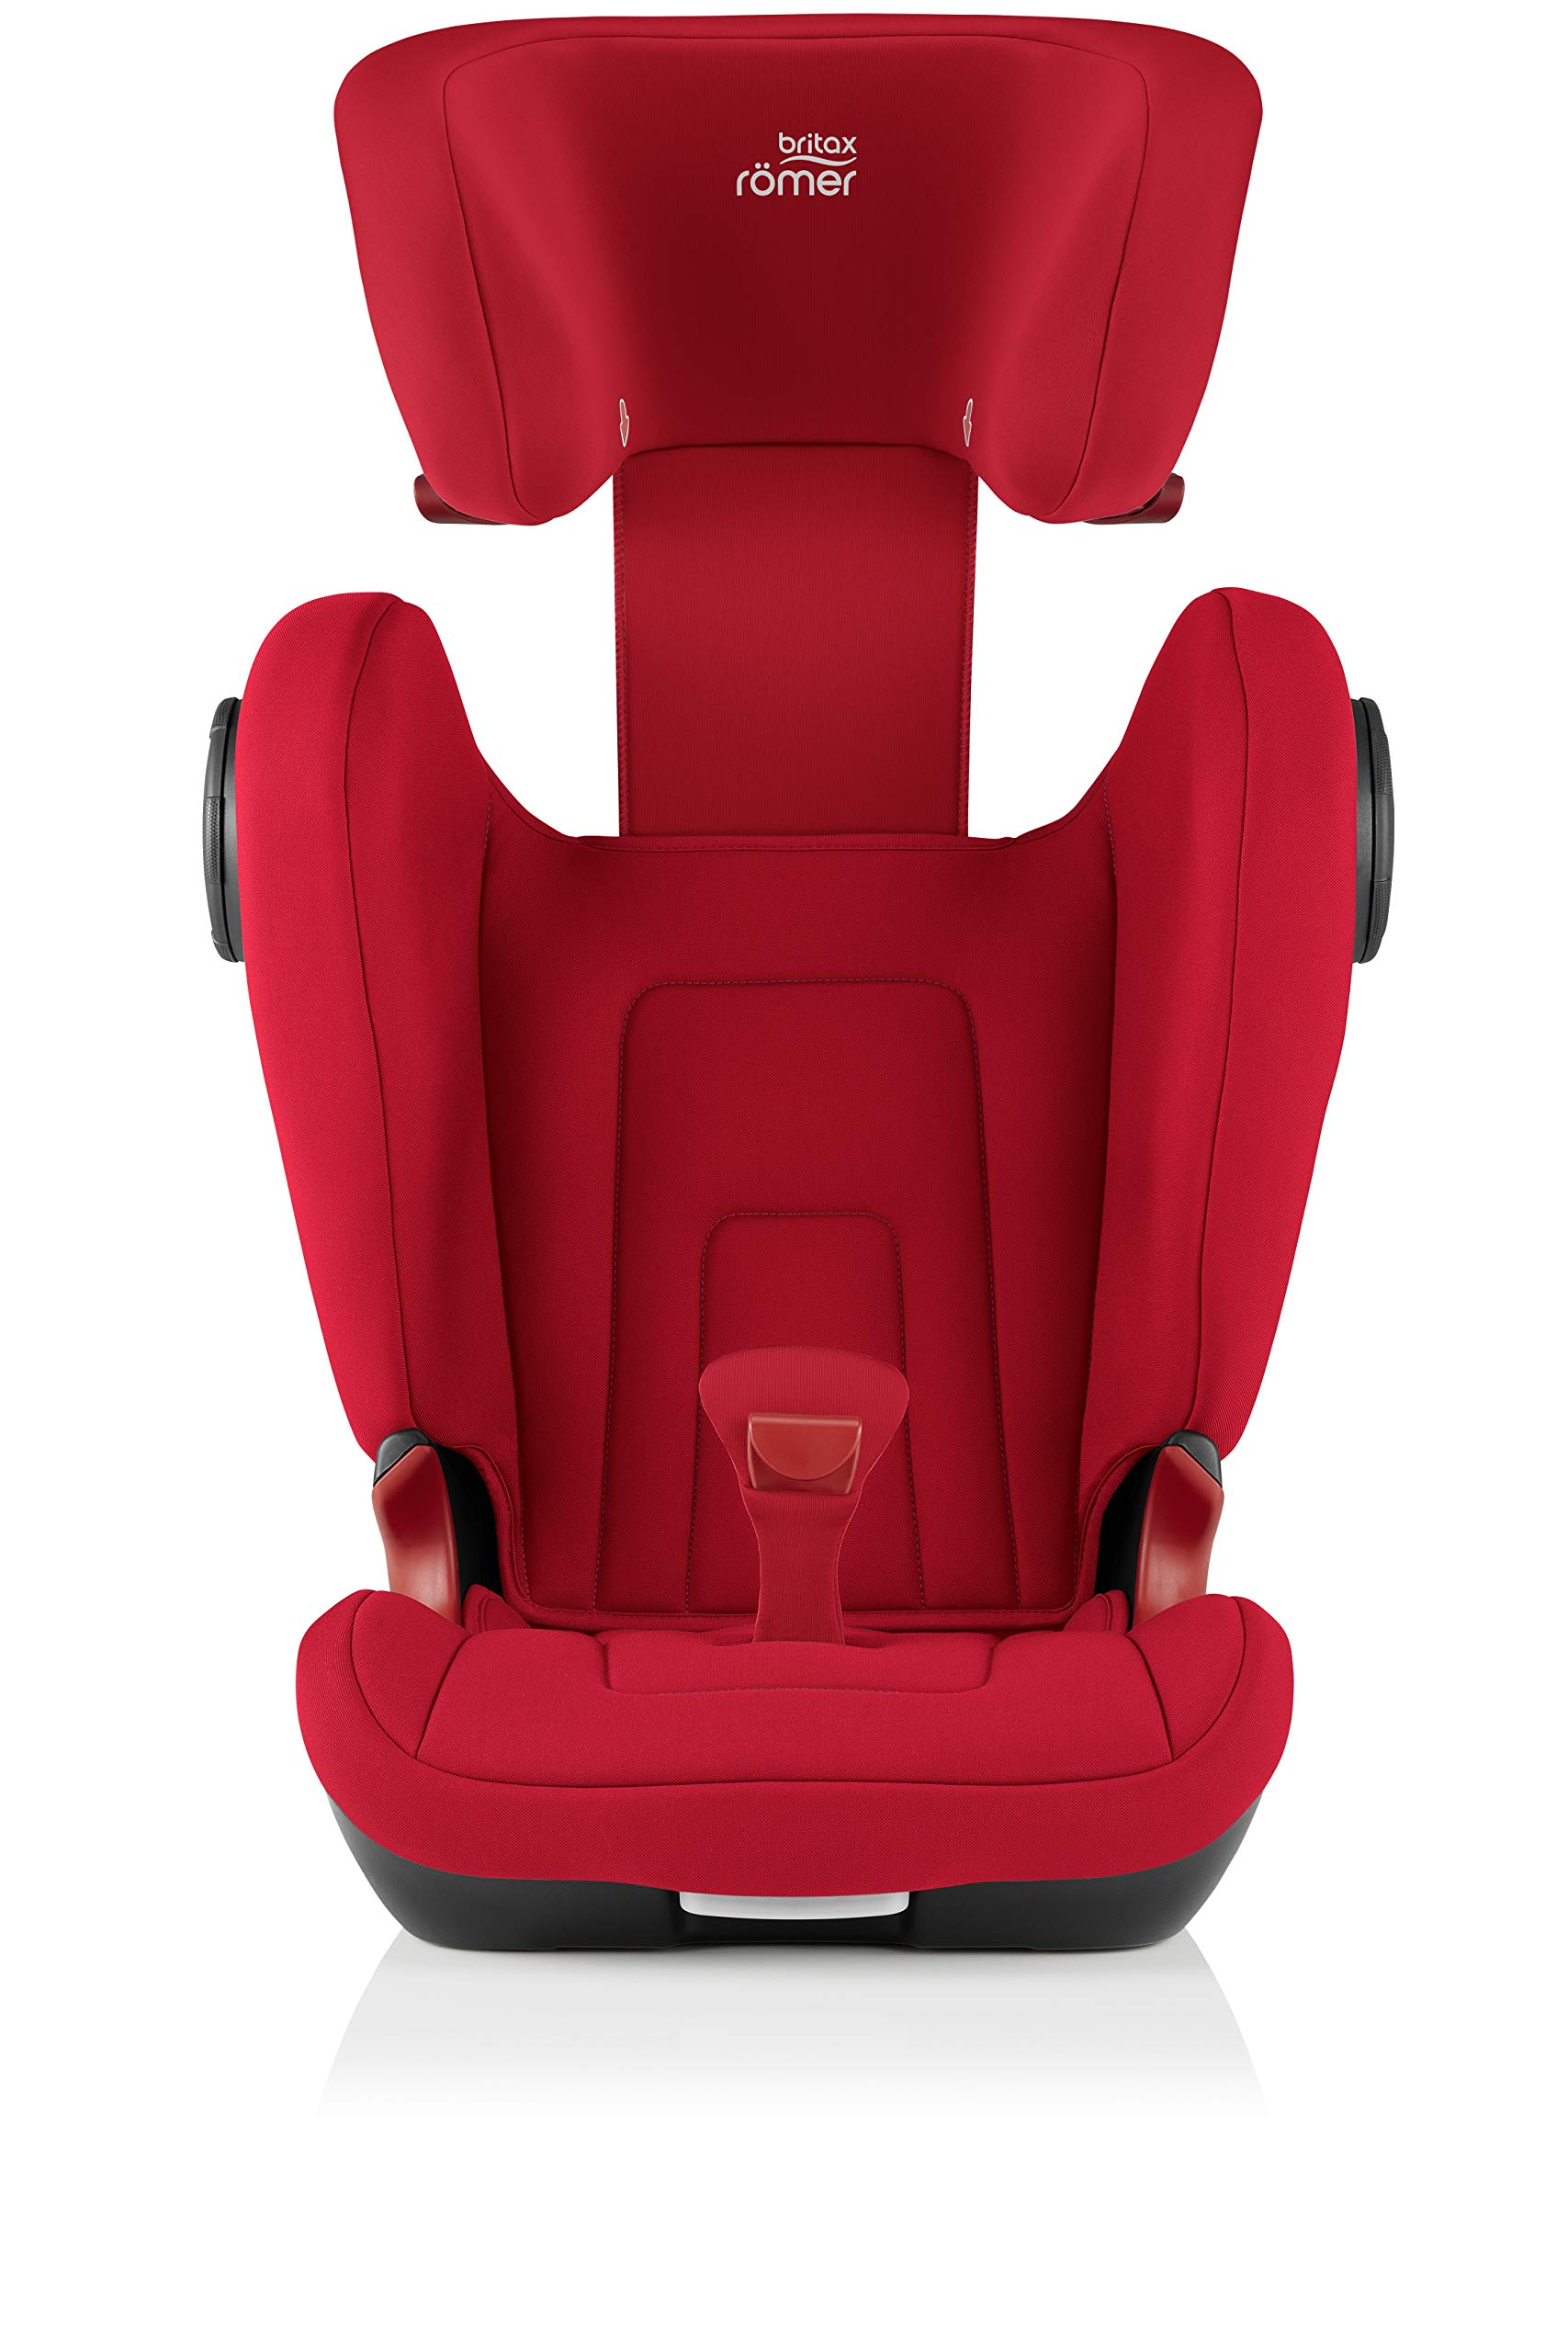 Britax Römer KIDFIX² S Group 2-3 (15-36kg) Car Seat - Fire Red Britax Römer Advanced side impact protection - sict offers superior protection to your child in the event of a side collision. reducing impact forces by minimising the distance between the car and the car seat. Secure guard - helps to protect your child's delicate abdominal area by adding an extra - a 4th - contact point to the 3-point seat belt. High back booster - protects your child in 3 ways: provides head to hip protection; belt guides provide correct positioning of the seat belt and the padded headrest provides safety and comfort. 7